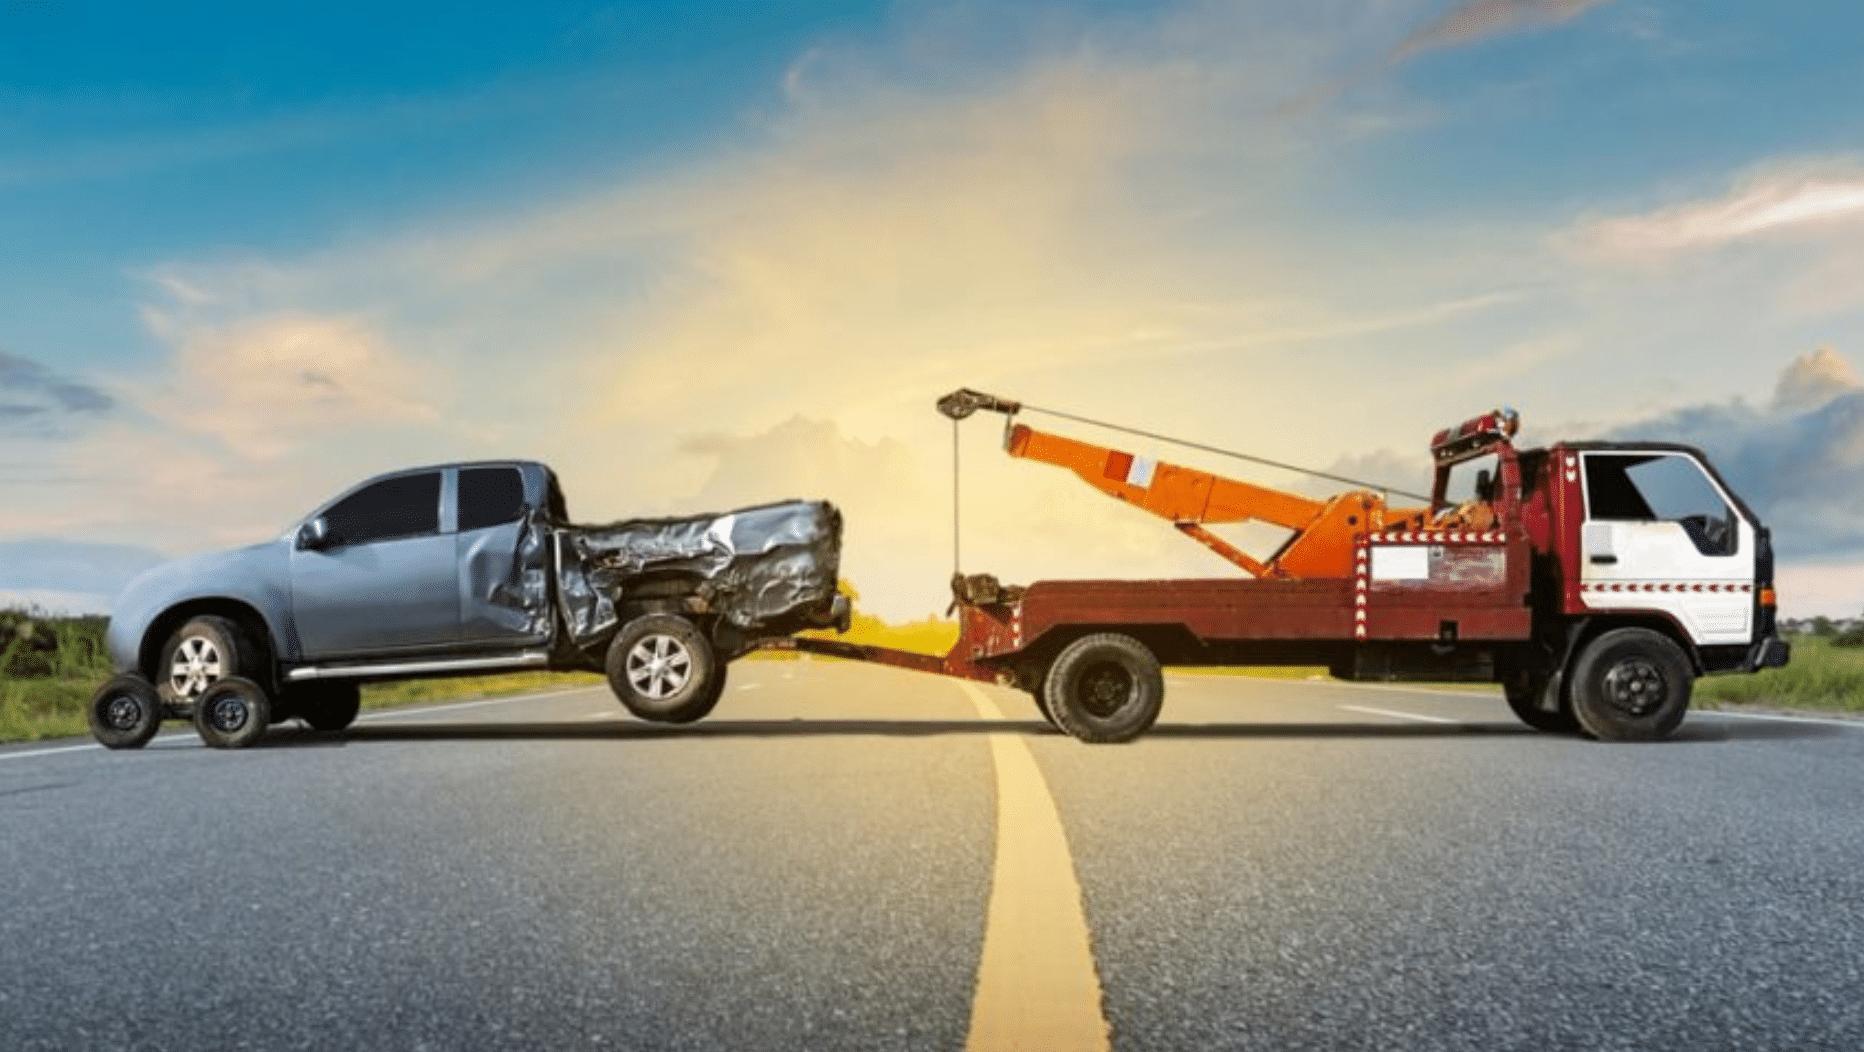 What Are The Most Common Types Of Tow Trucks?